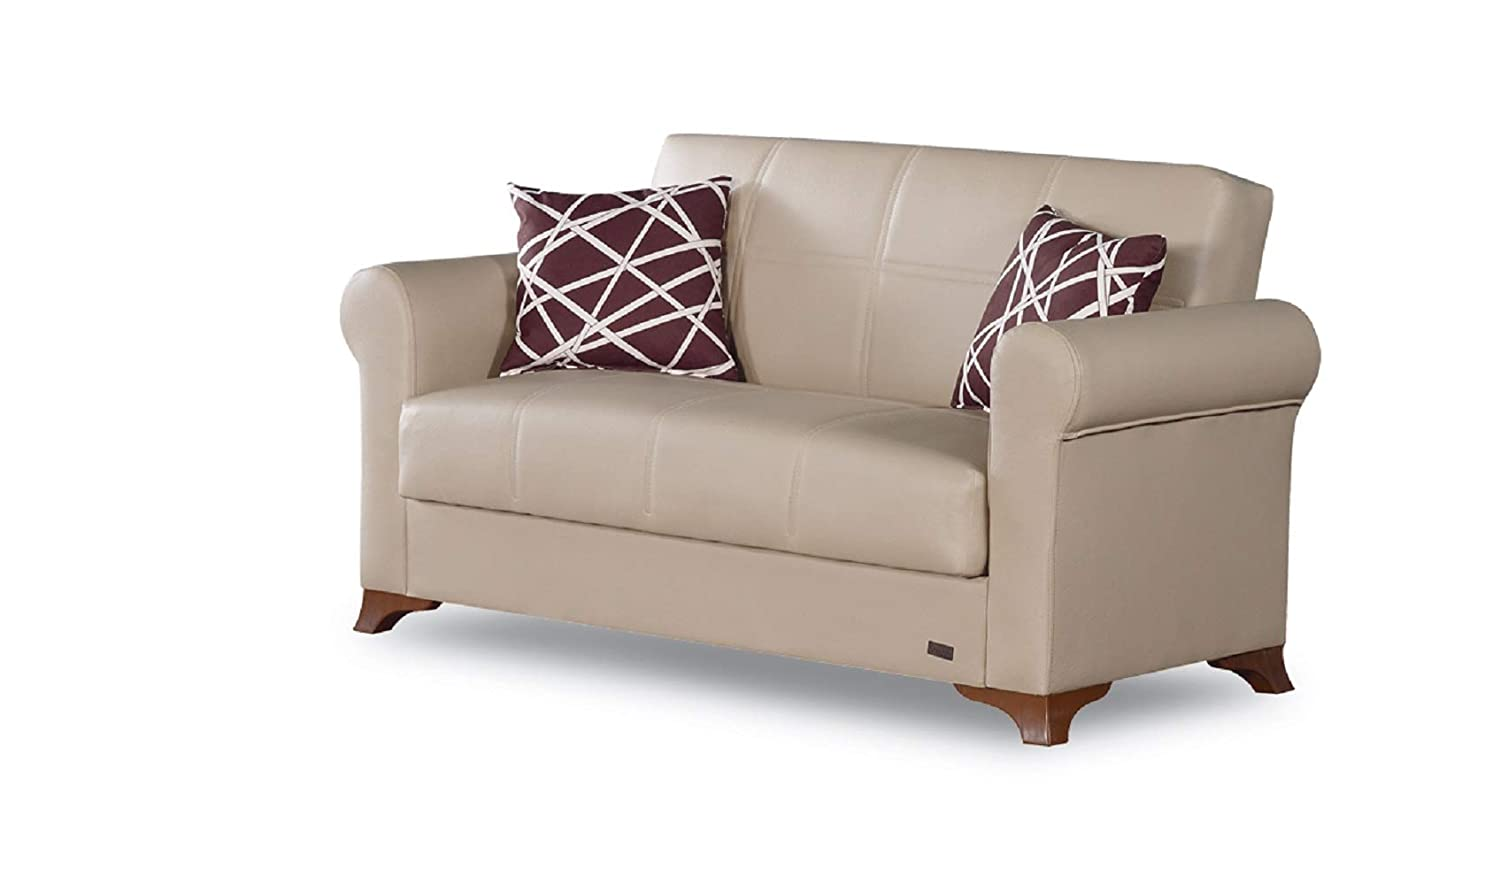 BEYAN Yonkers 2016 Collection Modern Convertible Bonded Leather Loveseat with Easy Access Storage Space, Includes 2 Pillows, Beige